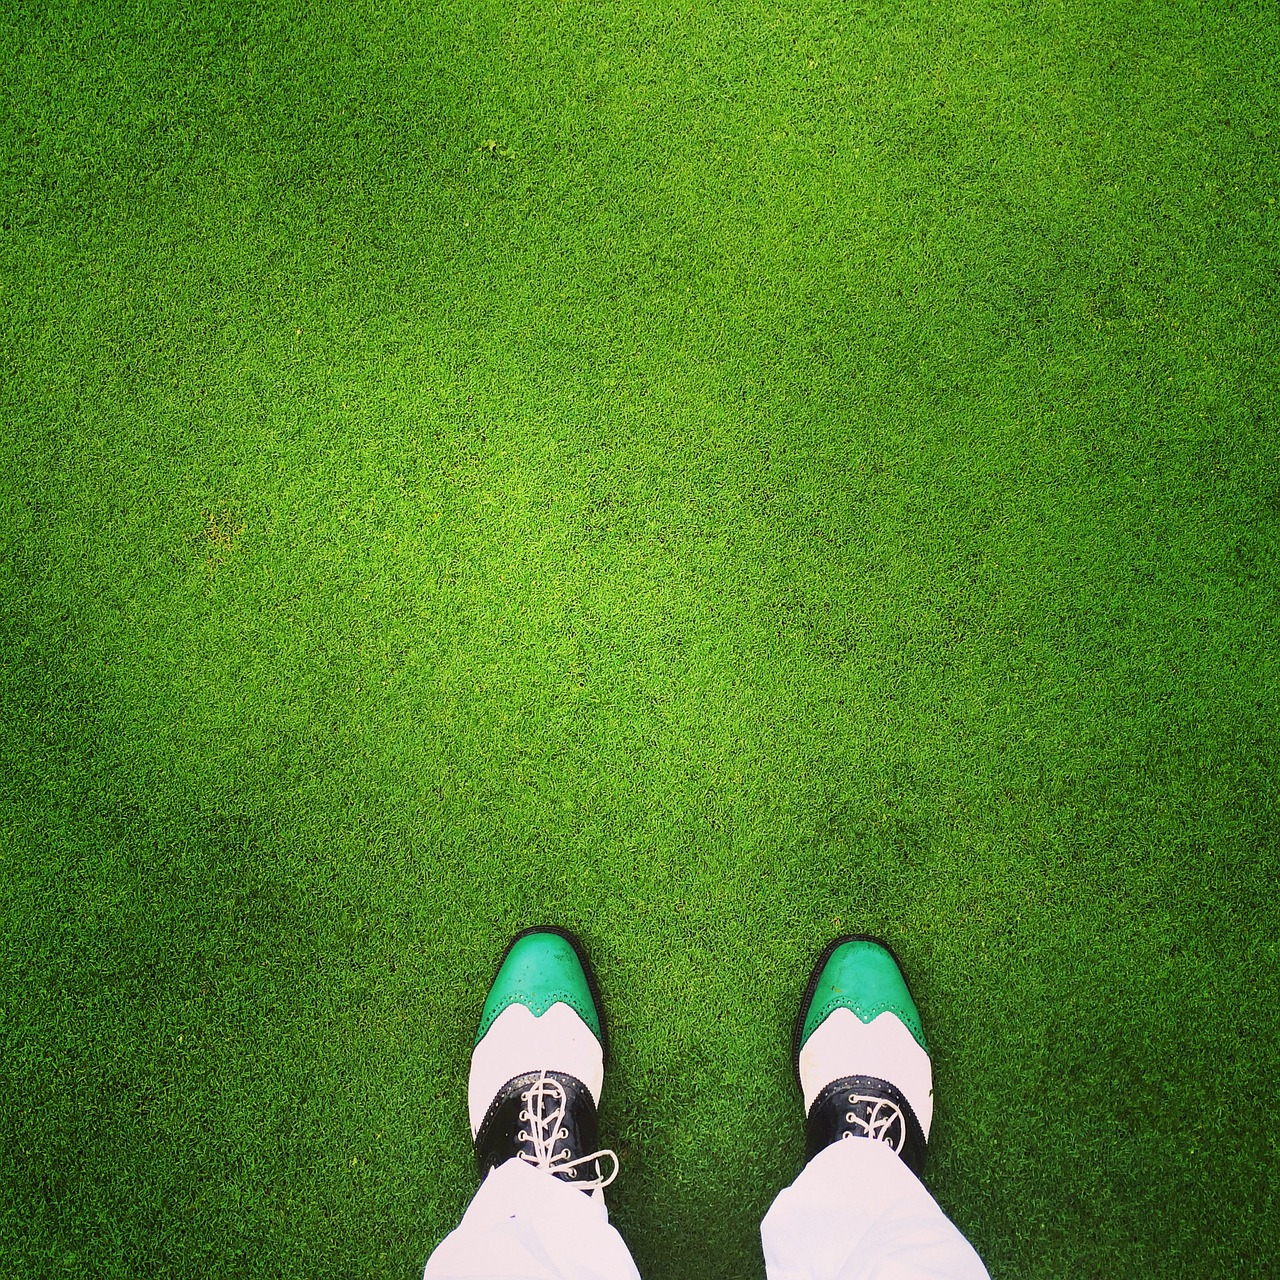 Golf shoes on a green